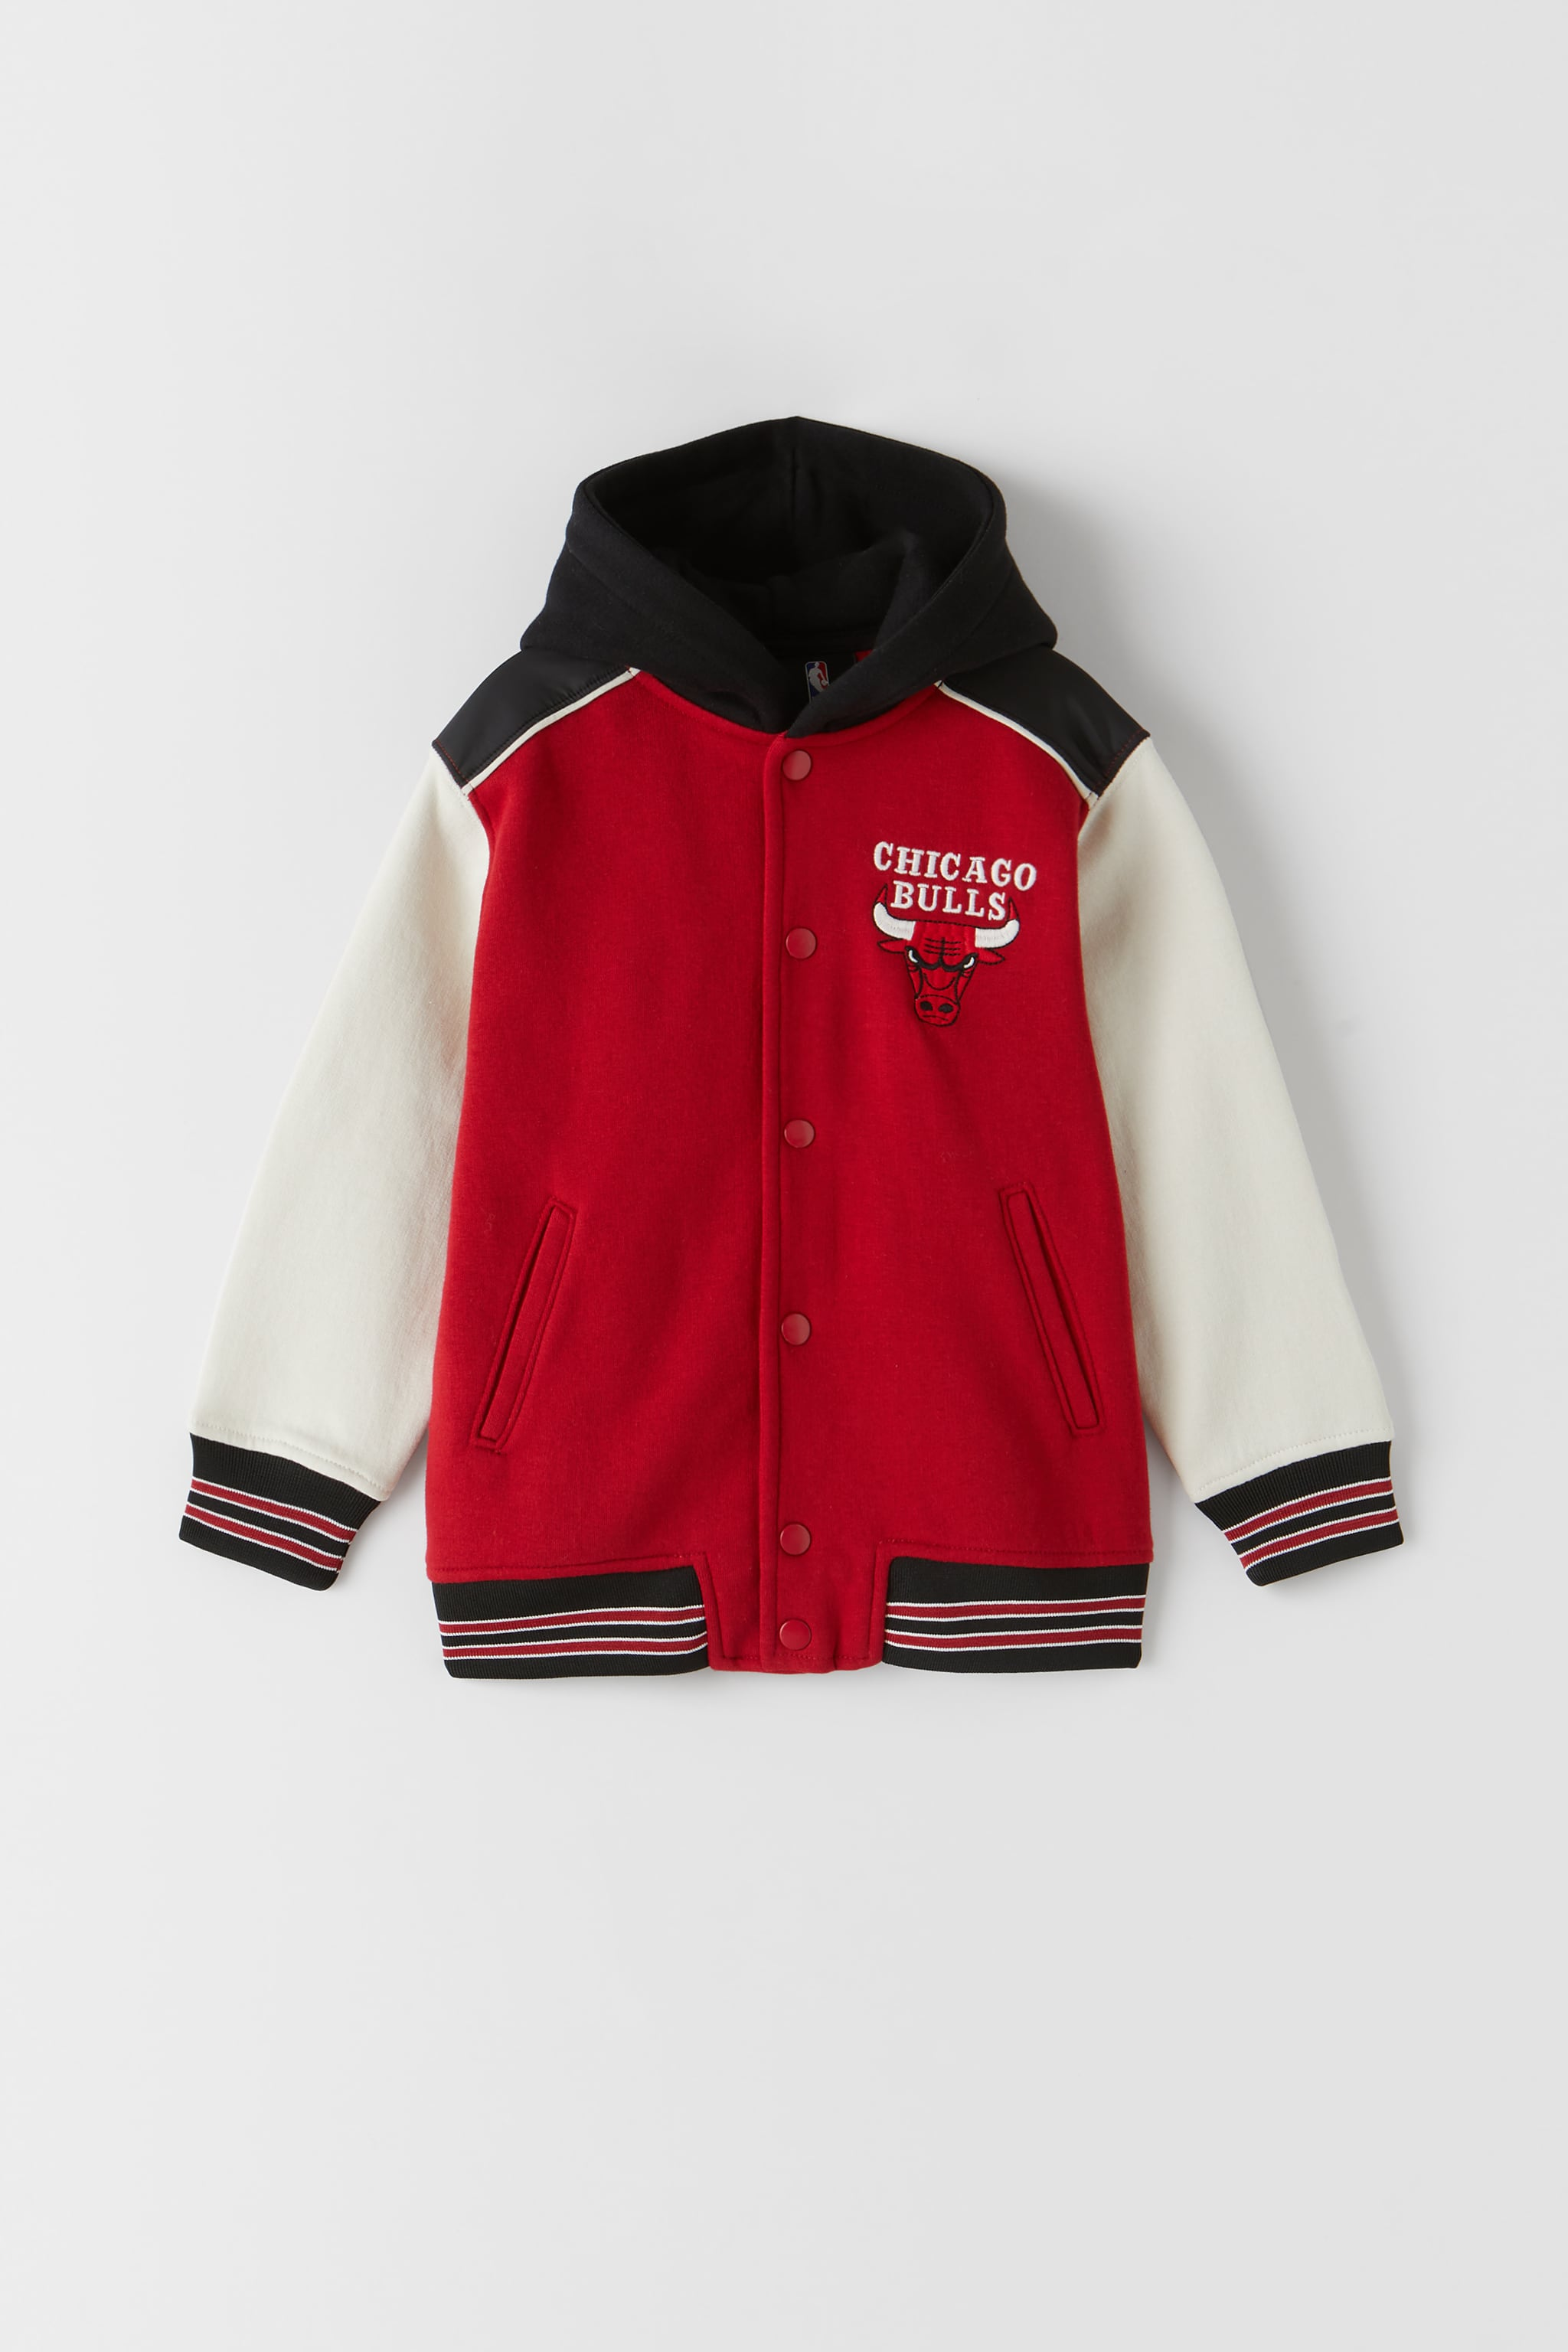 Zara NBA CHICAGO BULLS BOMBER